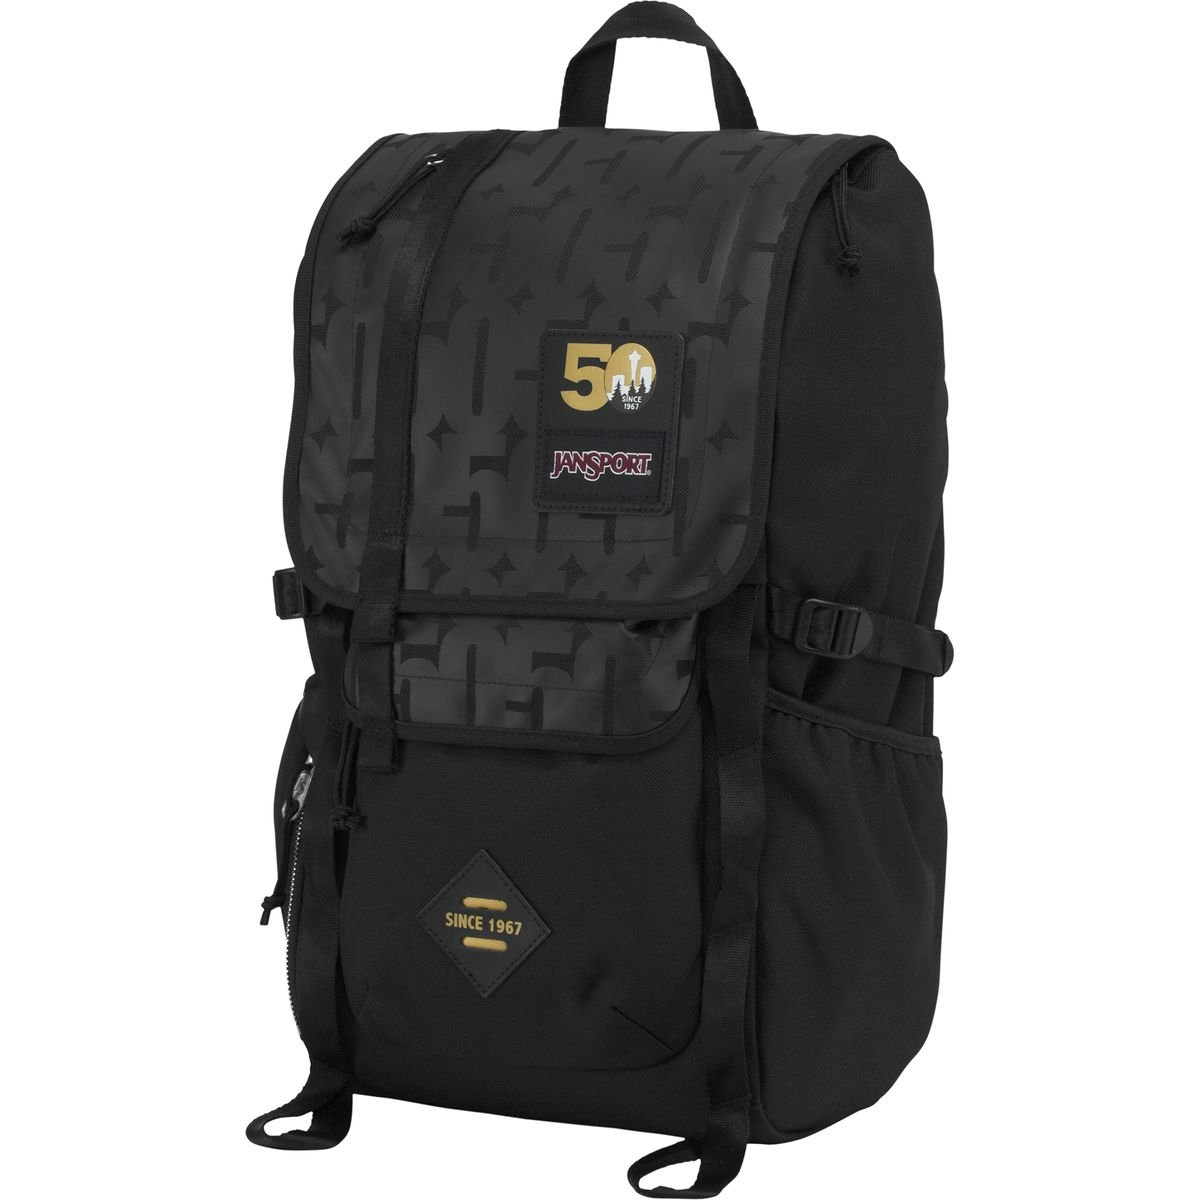 abd744f626b9 Where Can I Buy Jansport Backpacks- Fenix Toulouse Handball